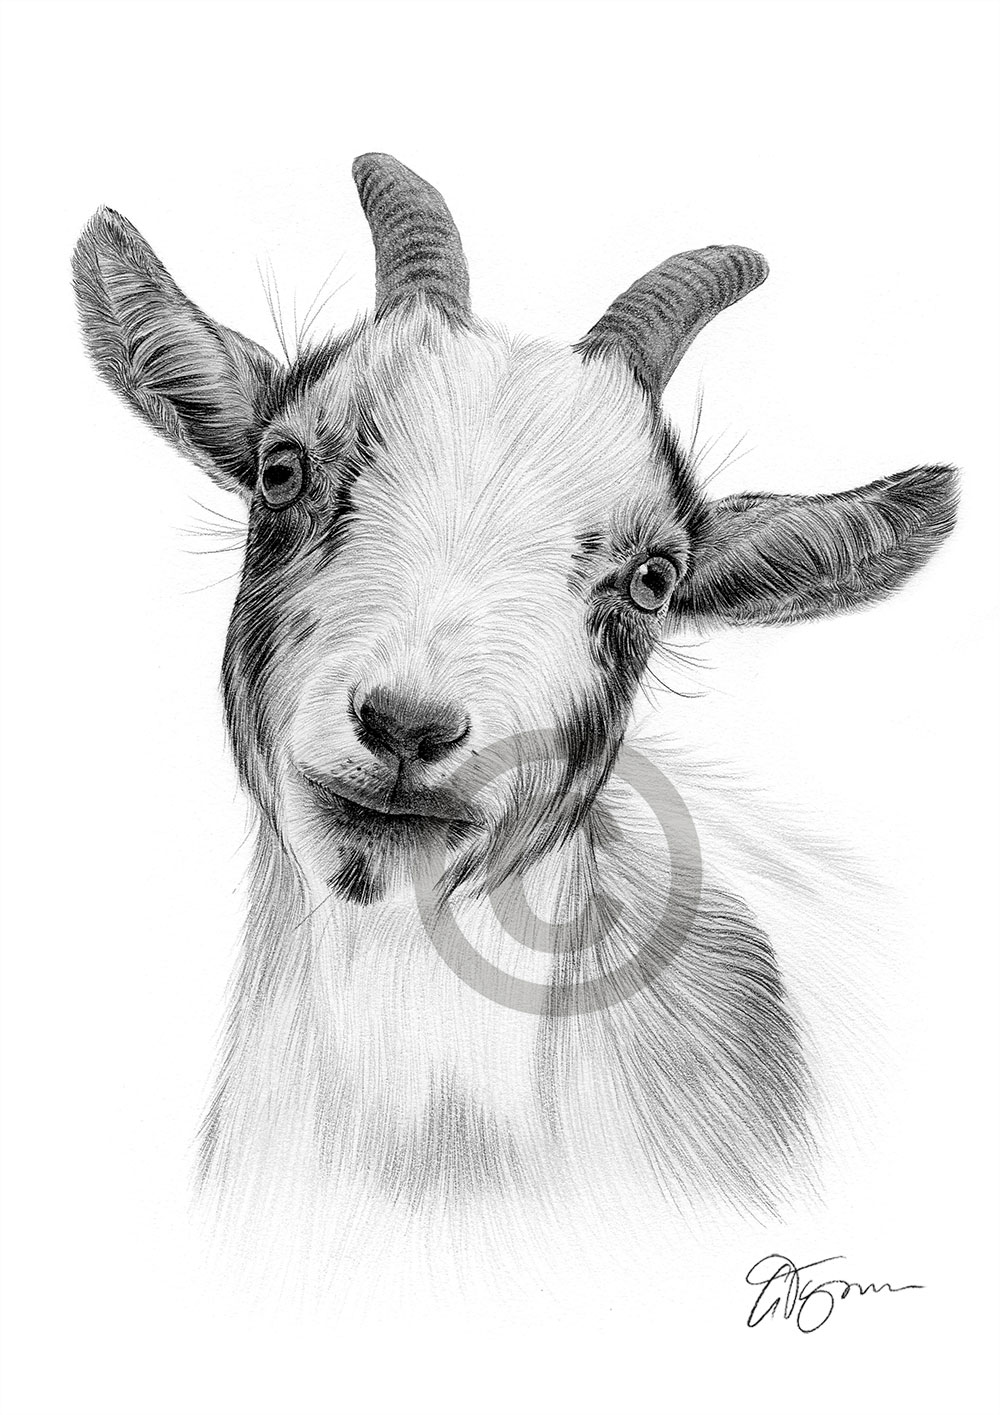 Details about GOAT Pencil Drawing Print - Wildlife art - A4 only signed by  artist Gary Tymon